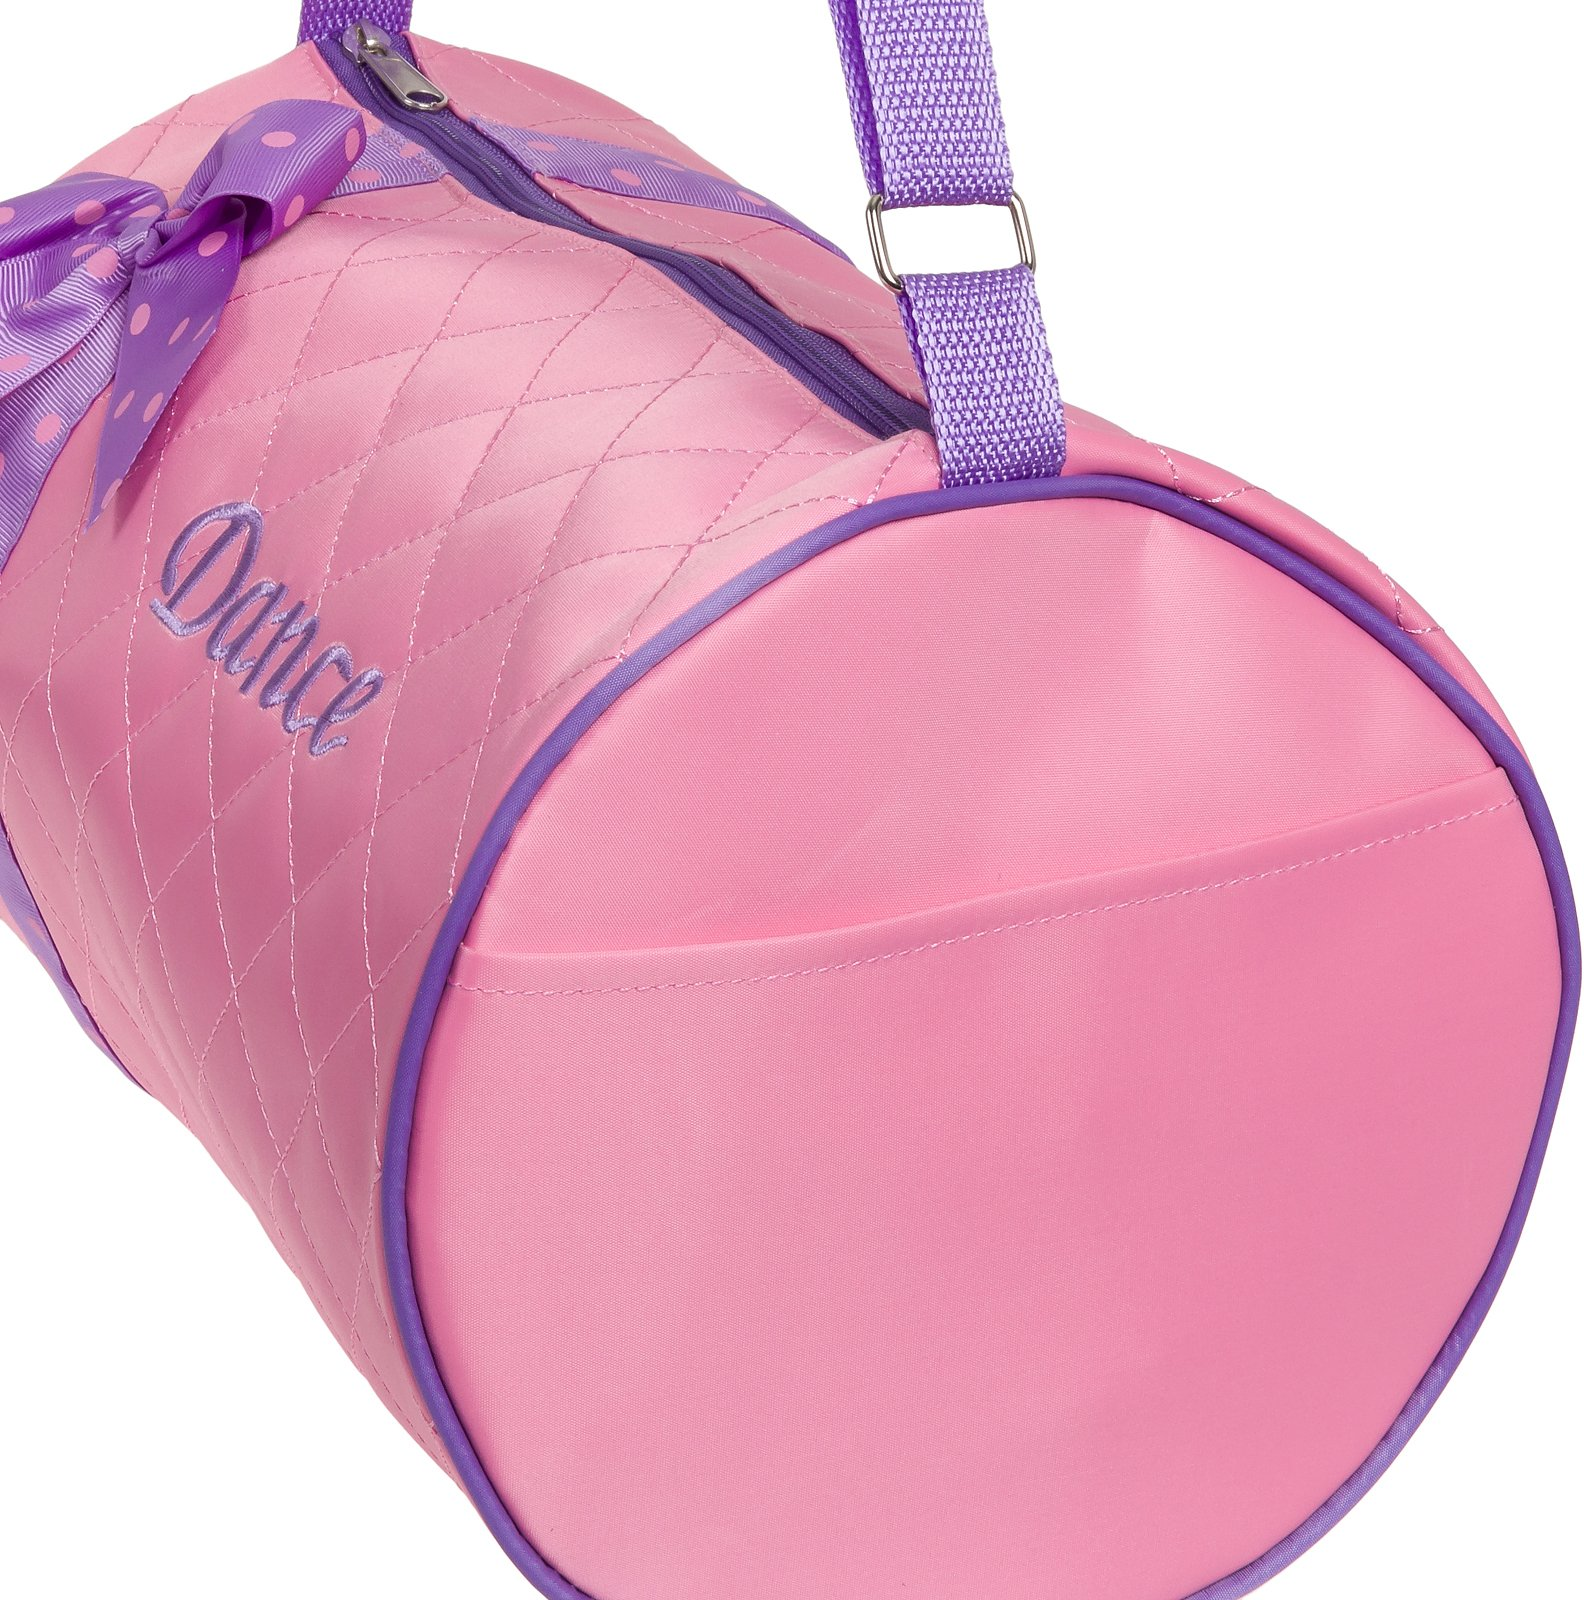 Silver Lilly Girls Dance Bag - Quilted Duffle Bag w/Lavender Bow (Light Pink) by Silver Lilly (Image #3)